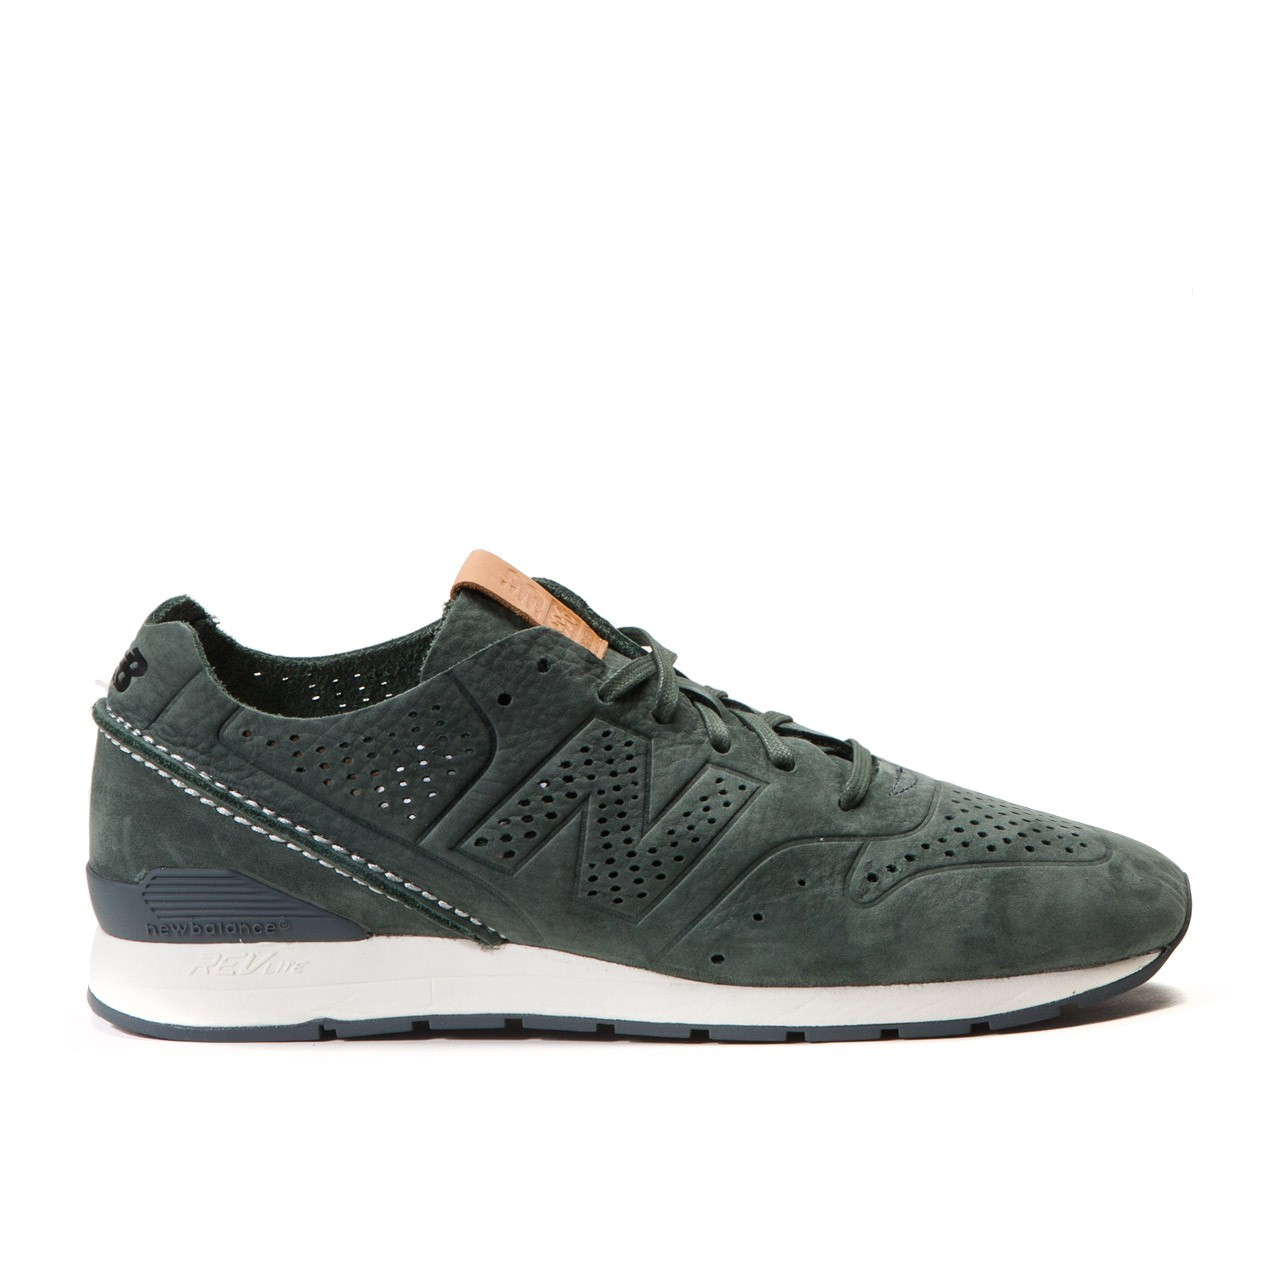 Men New Balance 996 Decon Dark Moss Reengineered MRL996DM Deconstructed Pack Runner Trainers Moss Green 450701-60-8